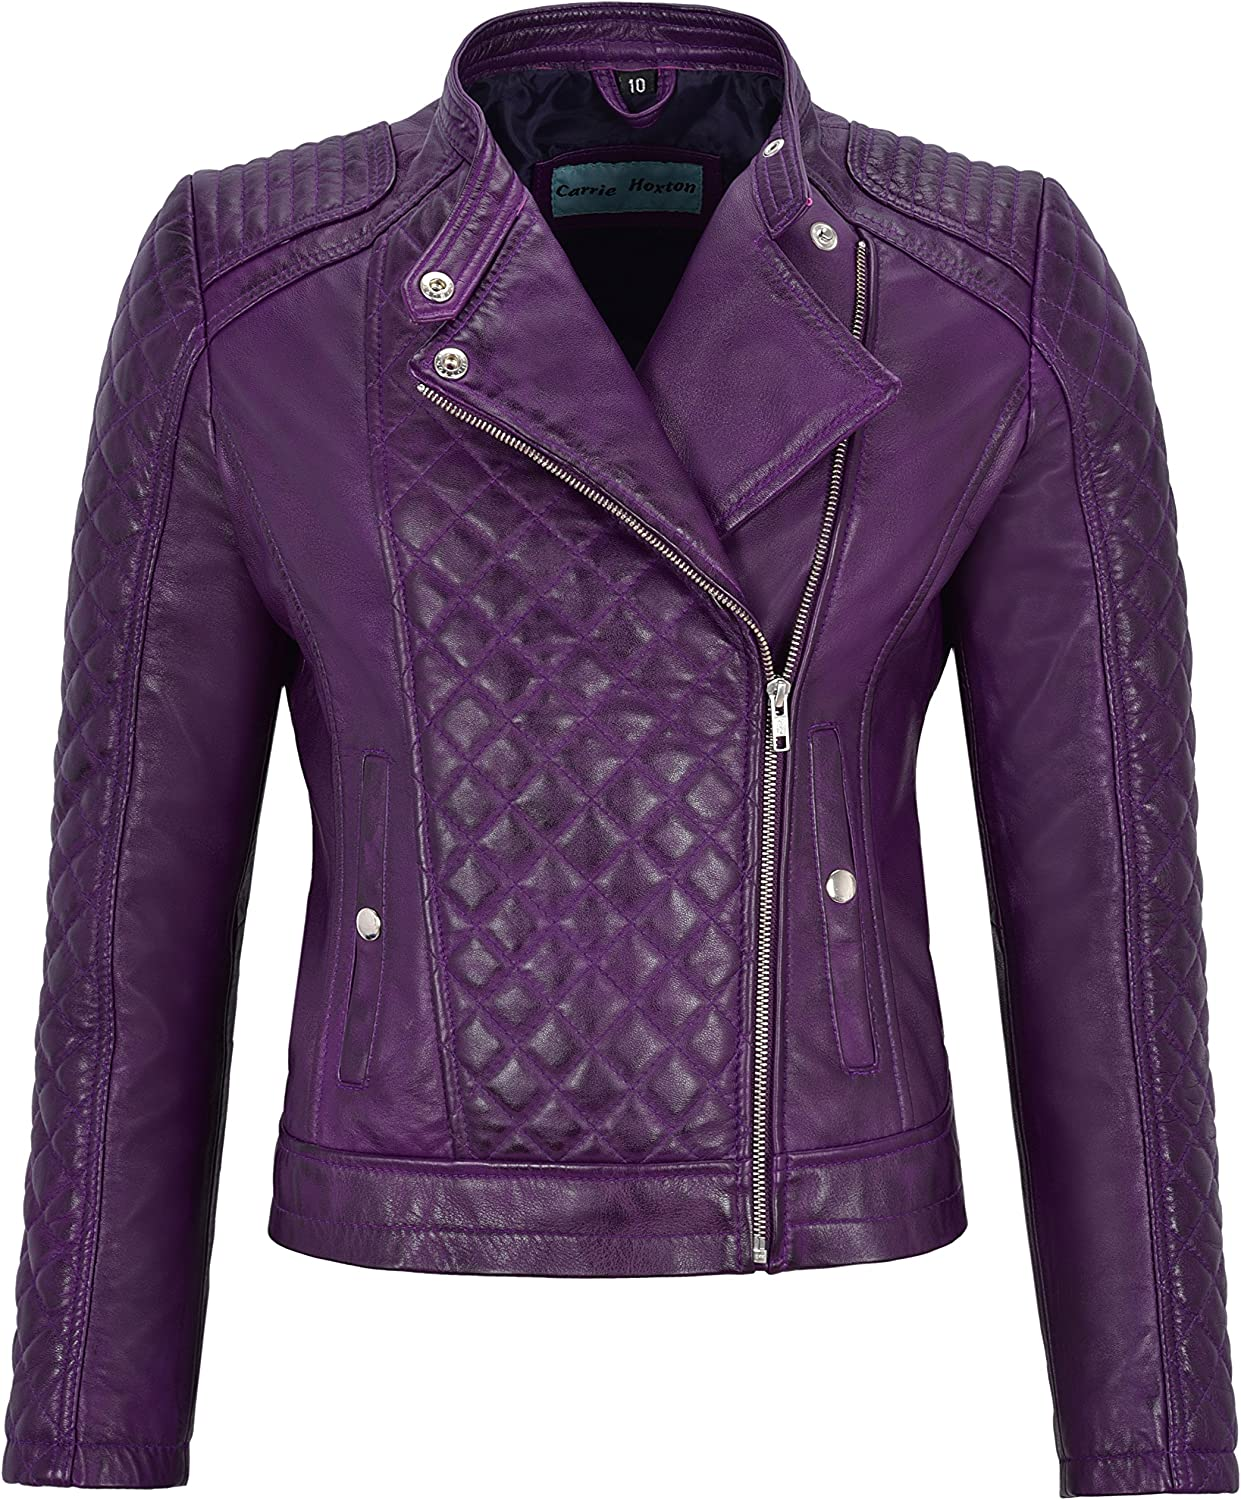 Woman's Real Leather Jacket Purple Biker Style Fitted Diamond Shape Front Panel